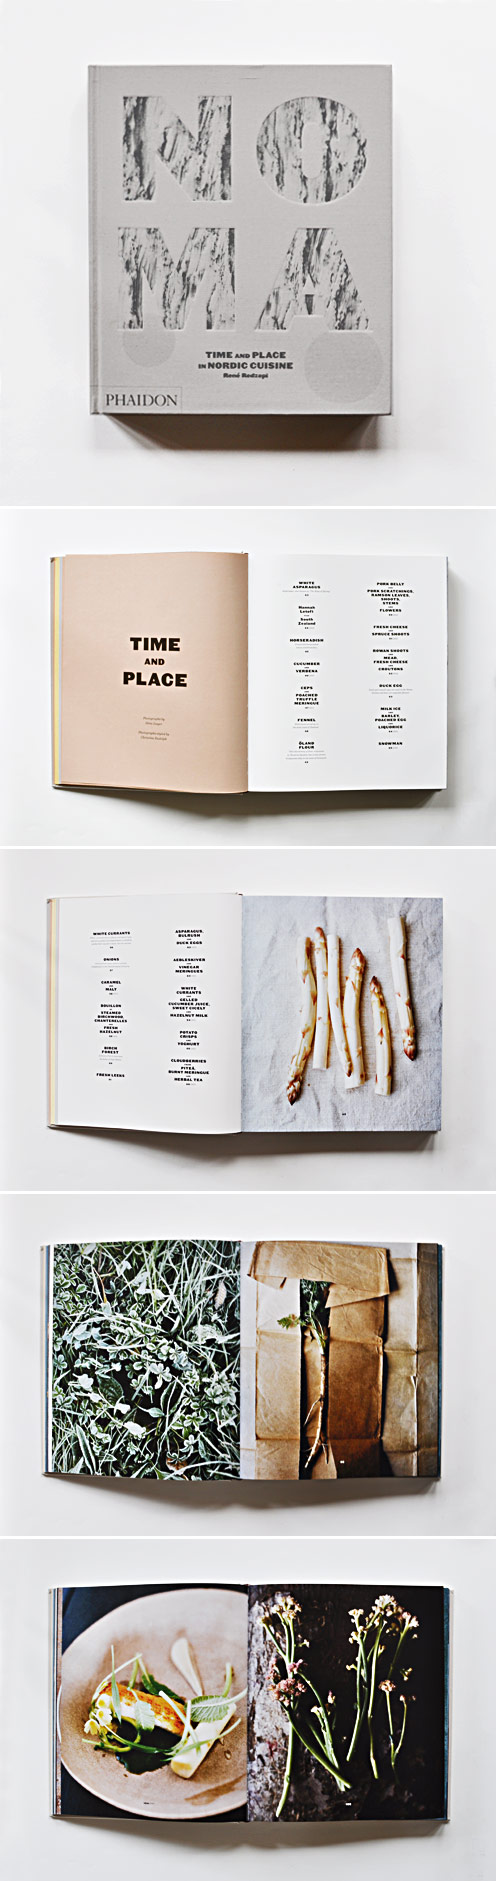 NOMA - #1 restaurant in the world. Would love to go one day. Beautiful design.